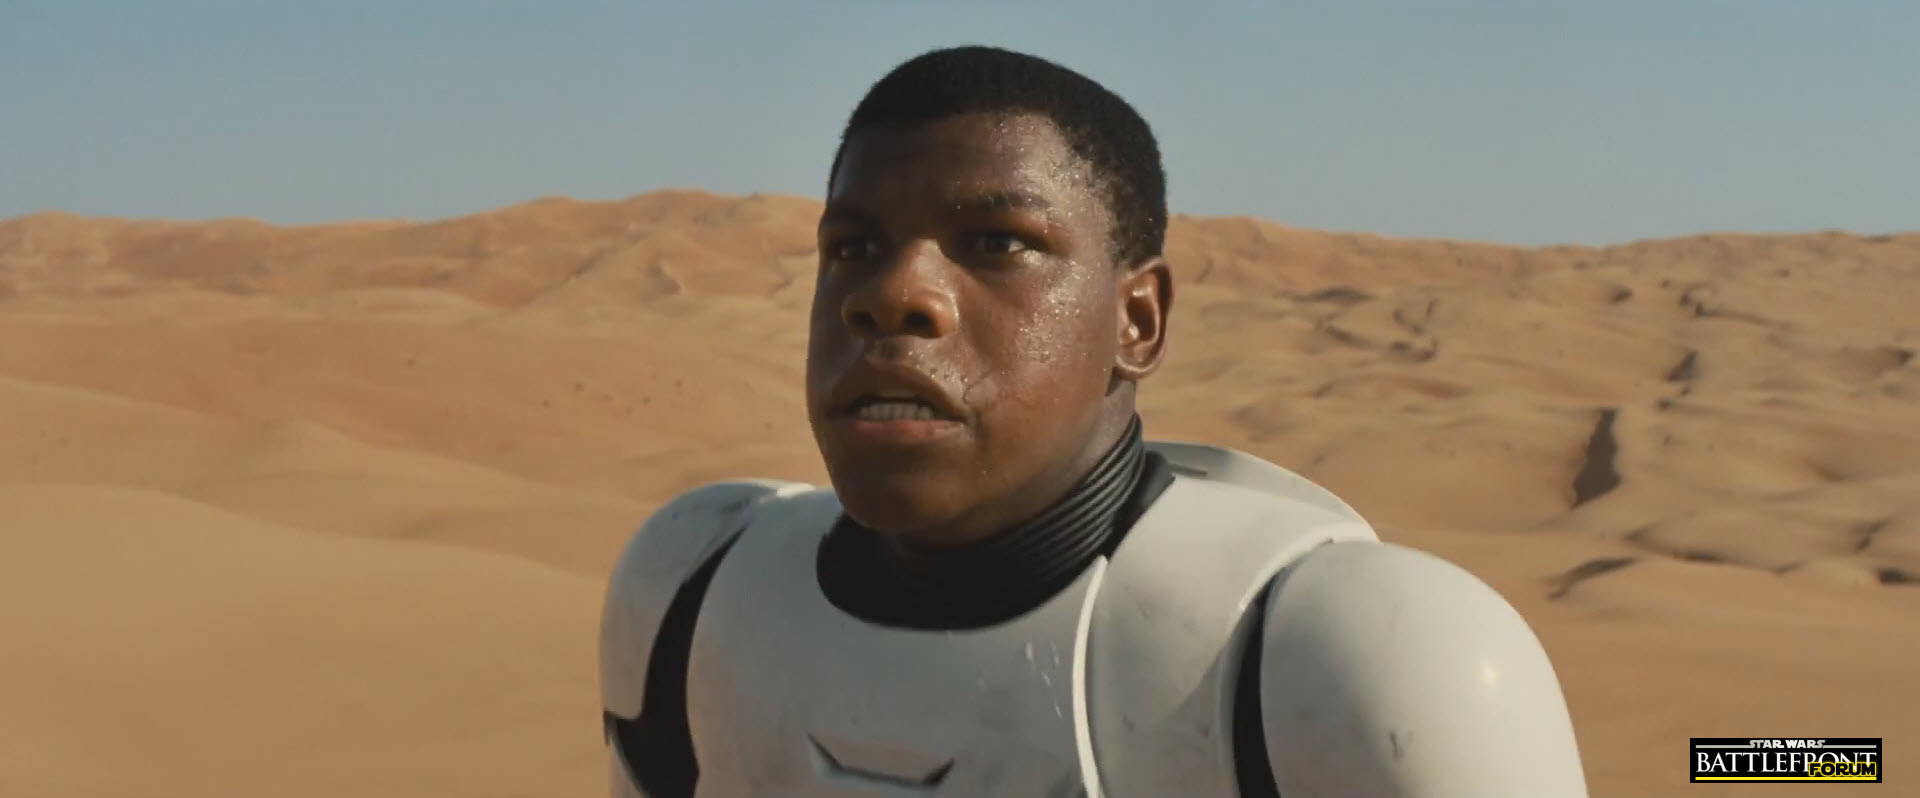 The Force Awakens Trailer – Stormtroopers